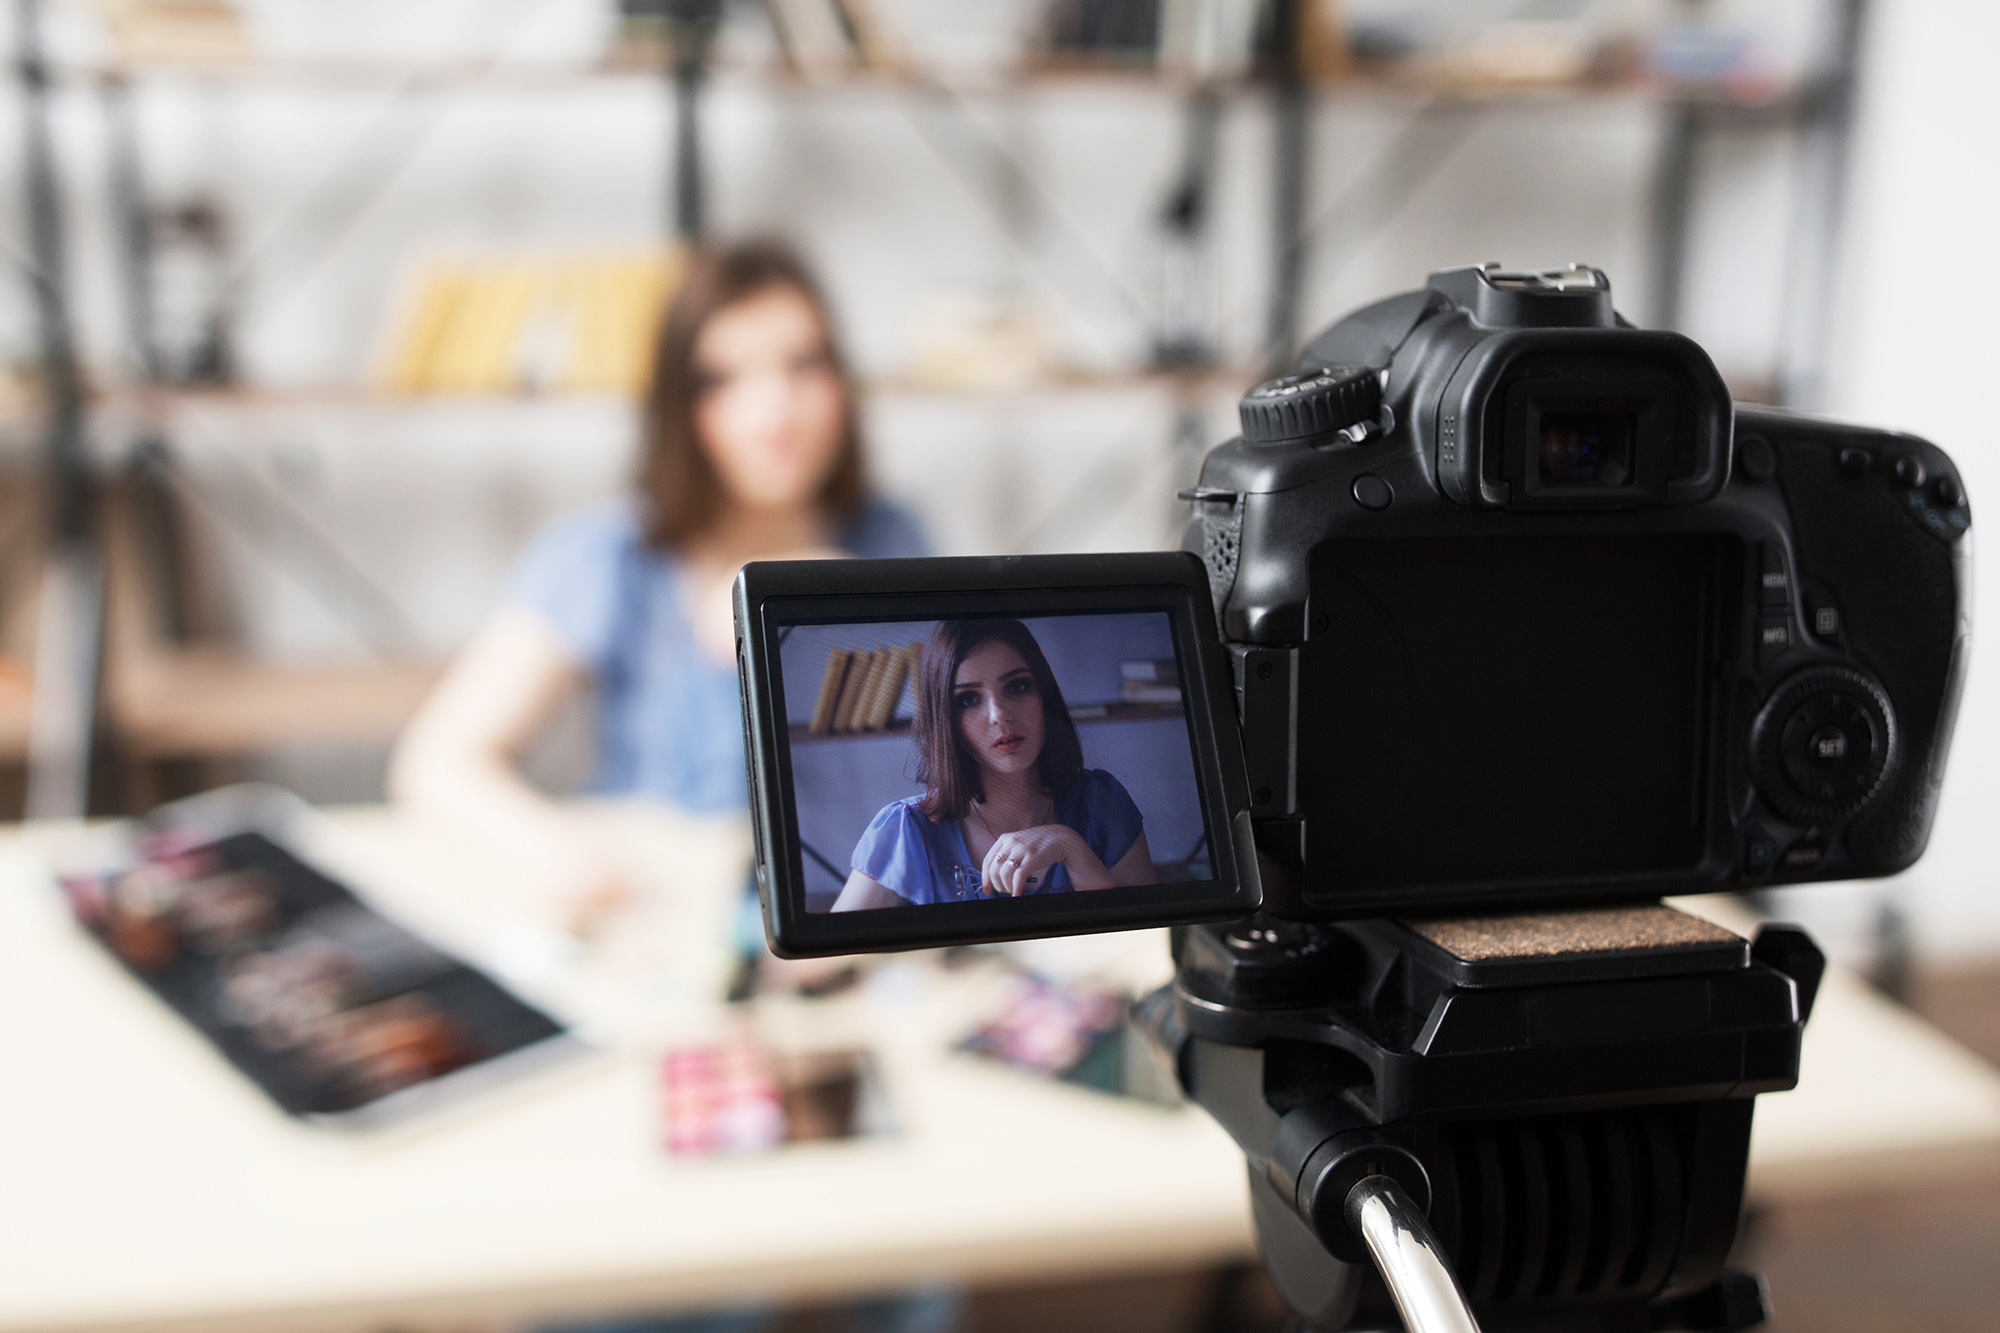 Customer testimonial videos to increase sales